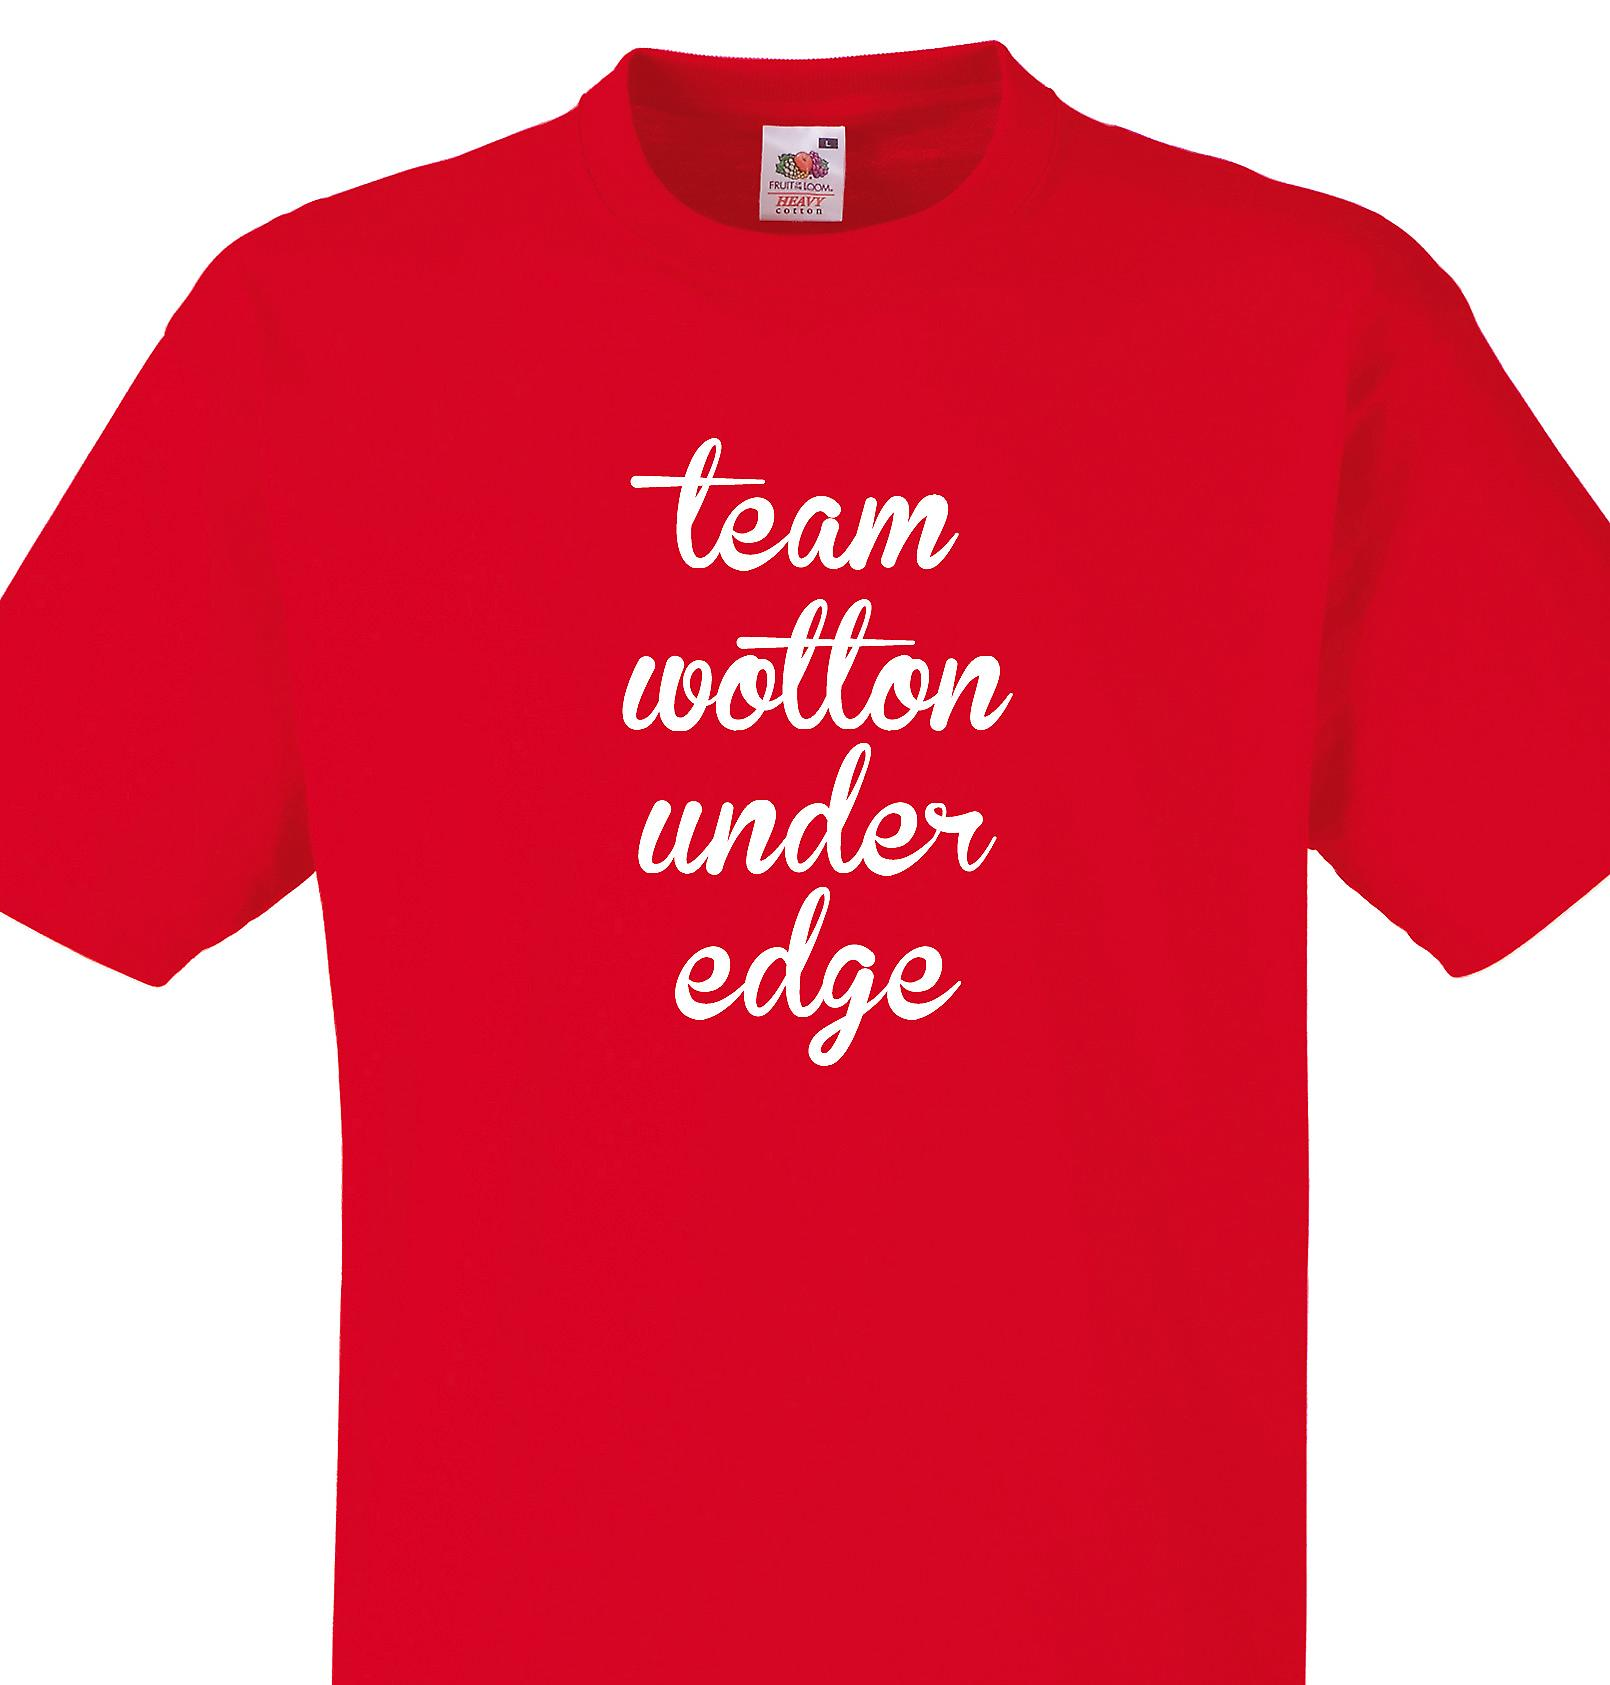 Team Wotton under edge Red T shirt